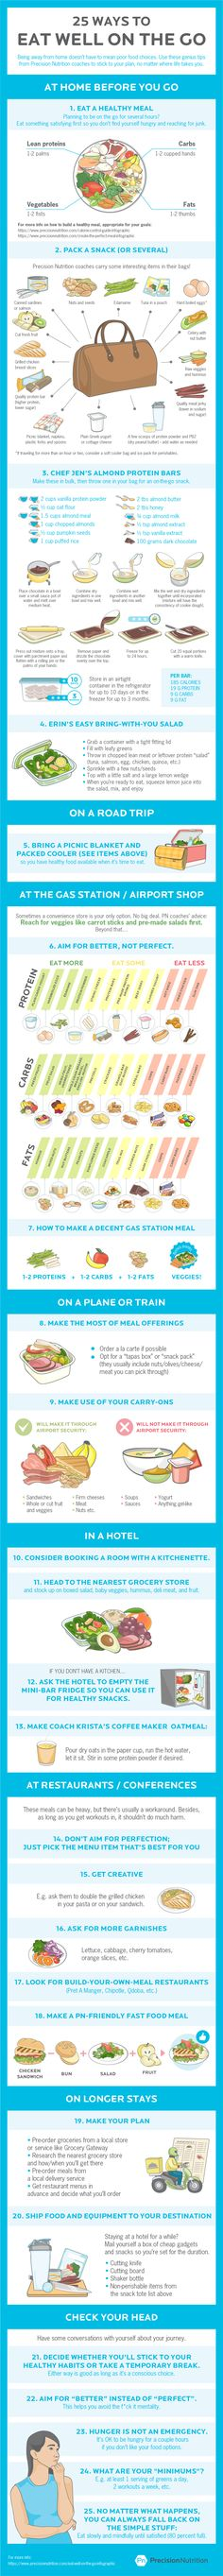 Traveling for work? Going on vacation? Running your kids from soccer game to violin practice? Being away from home is one of the most common nutrition challenges I hear about. So I asked Precision Nutrition's coaches for the tips and tricks they use to eat well on the go. Below, 25 ways to do stick to your plan, no matter where life takes you.